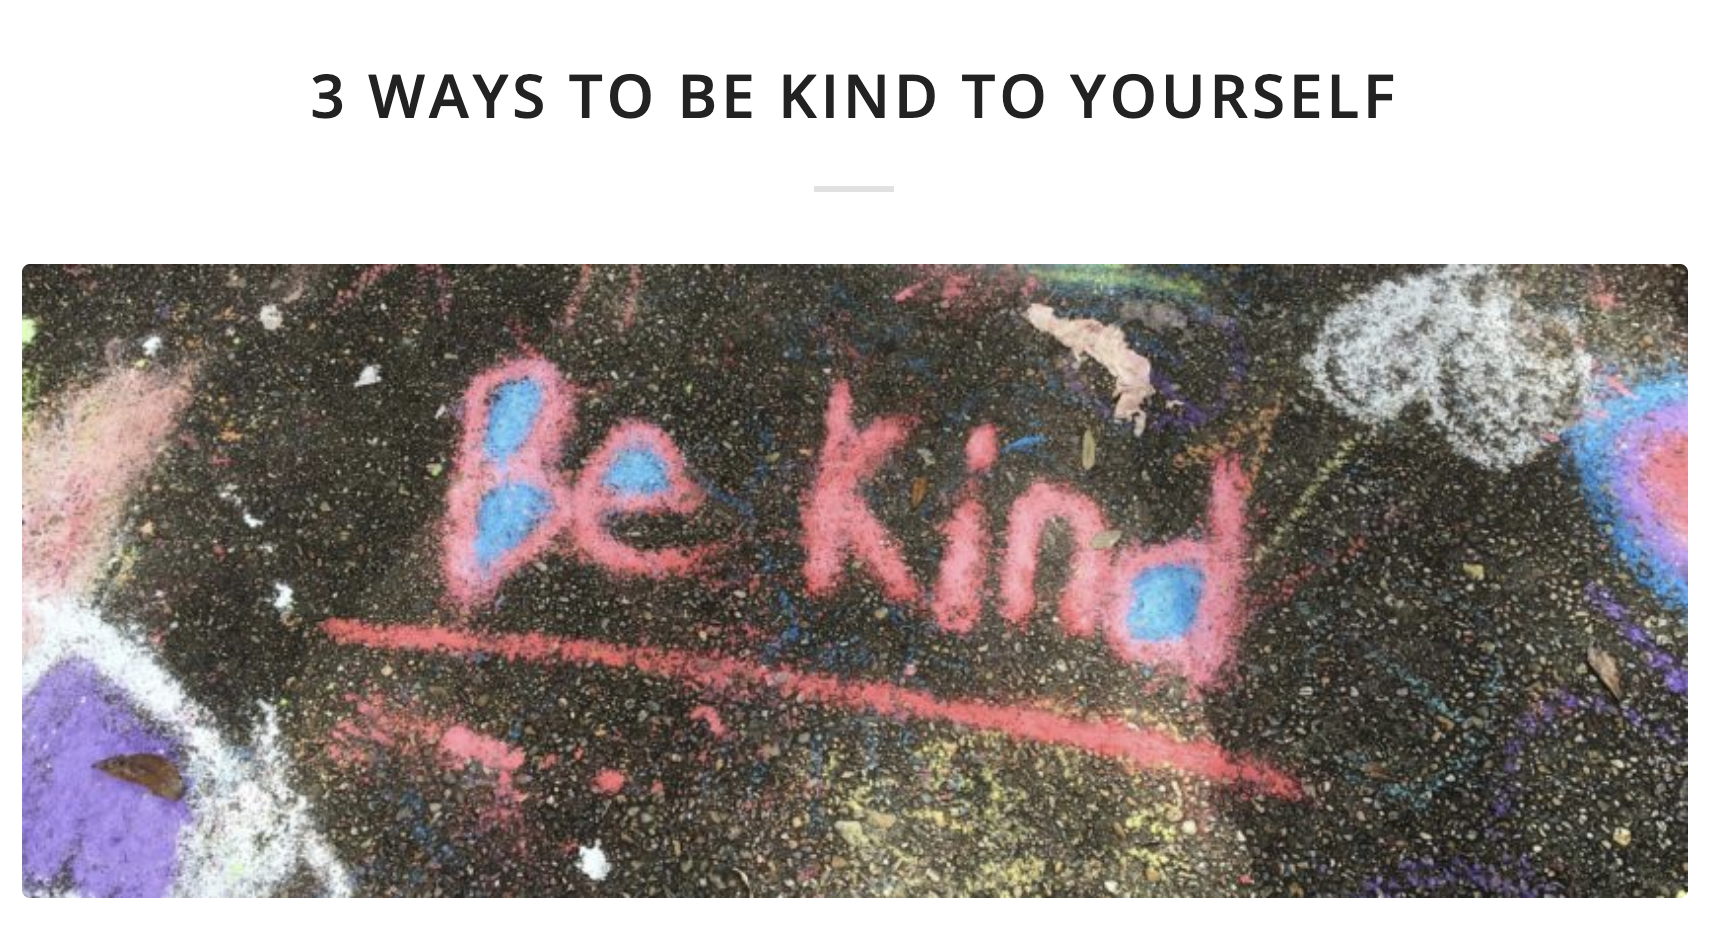 3 Ways to Be Kind to Yourself